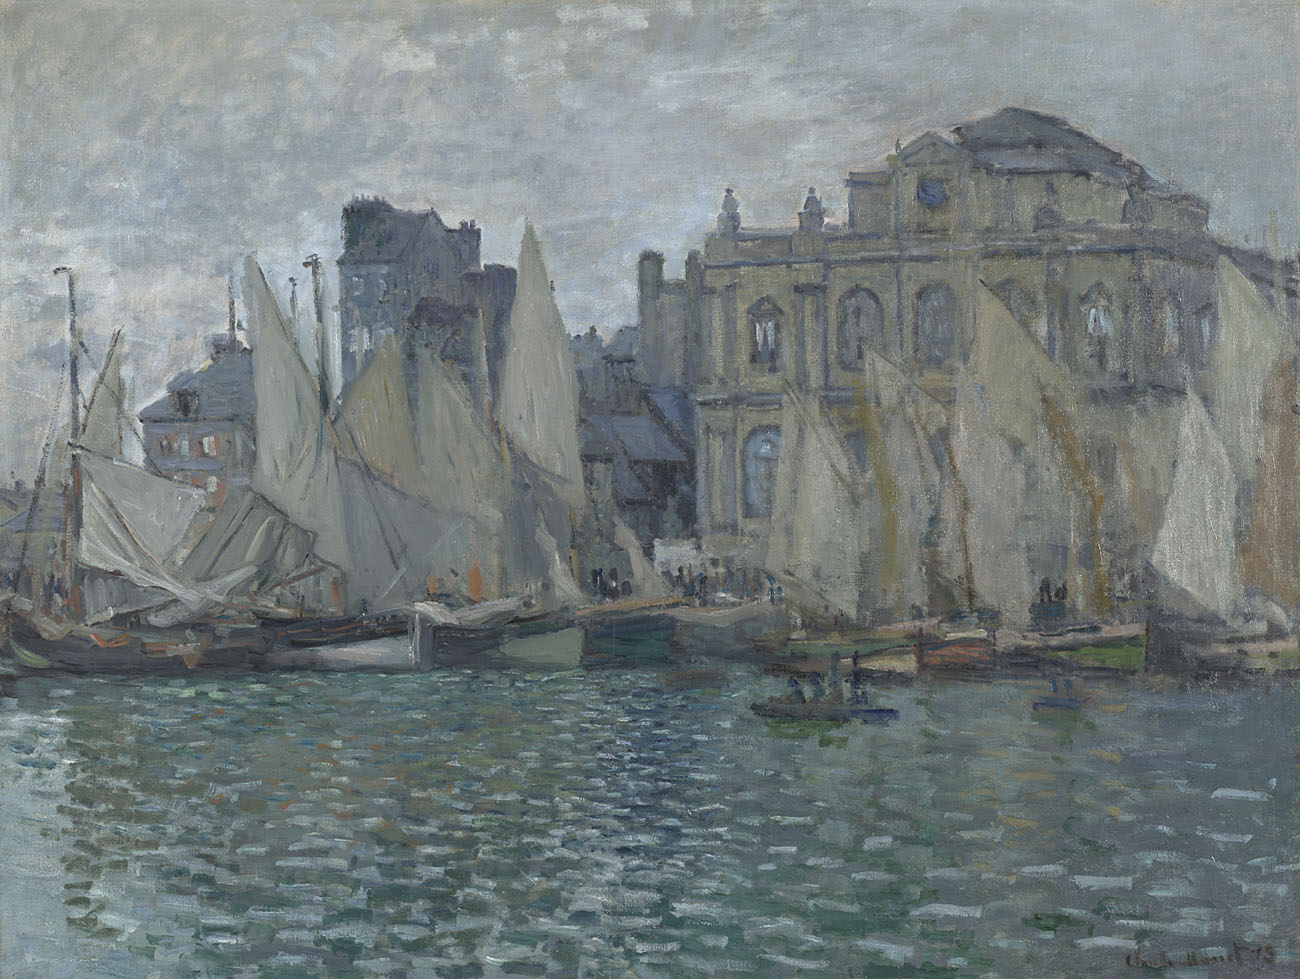 Claude Monet, 'The Museum at Le Havre', 1873 © The National Gallery, London. Bequeathed by Helena and Kenneth Levy, 1990